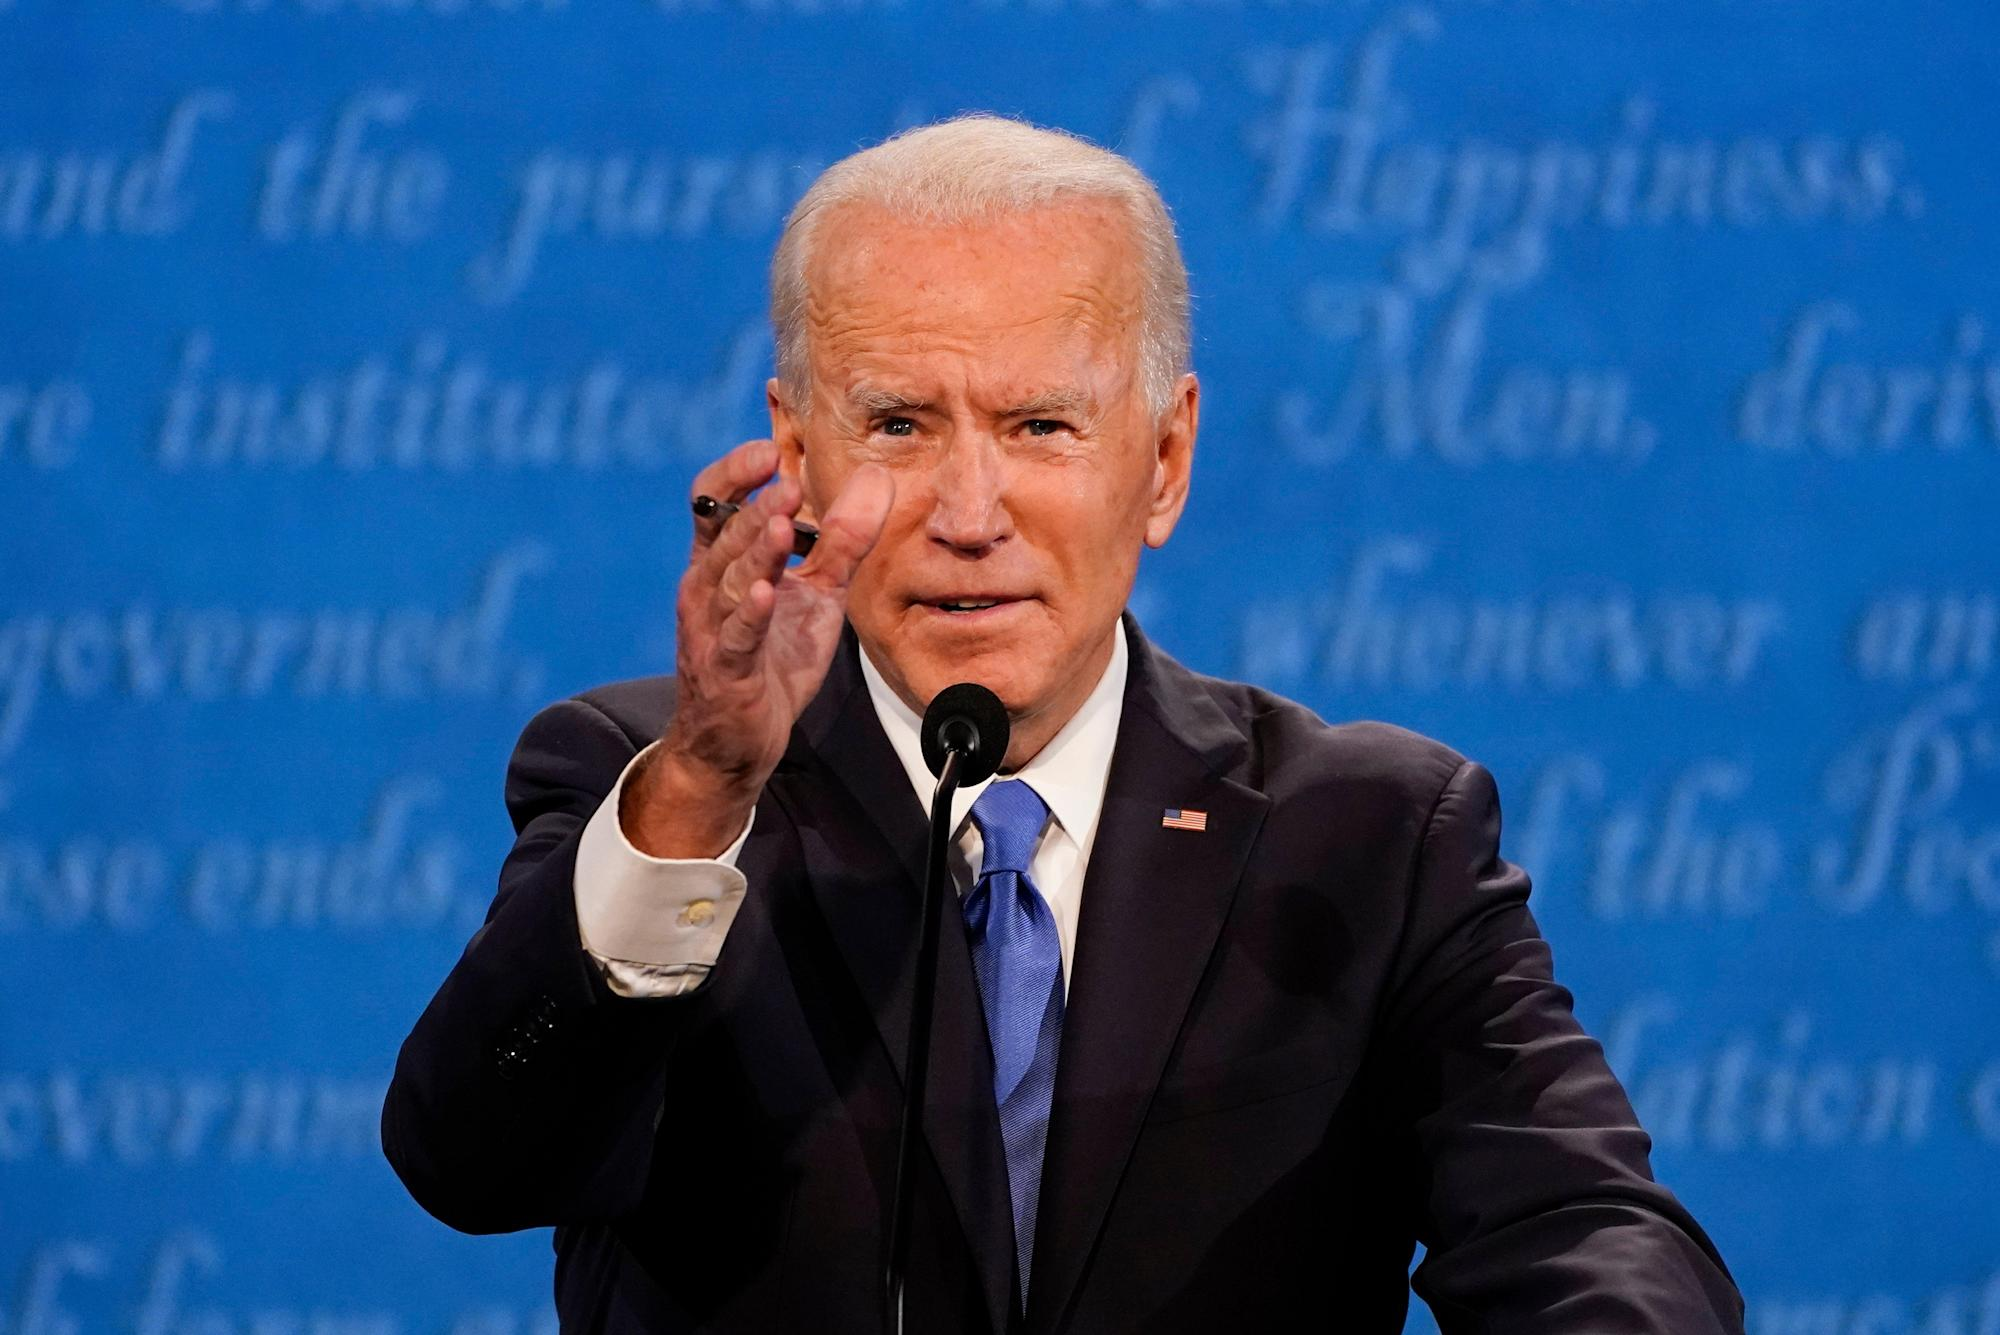 Presidential debate: Biden attacks Trump over demand for Central Park Five to face death penalty